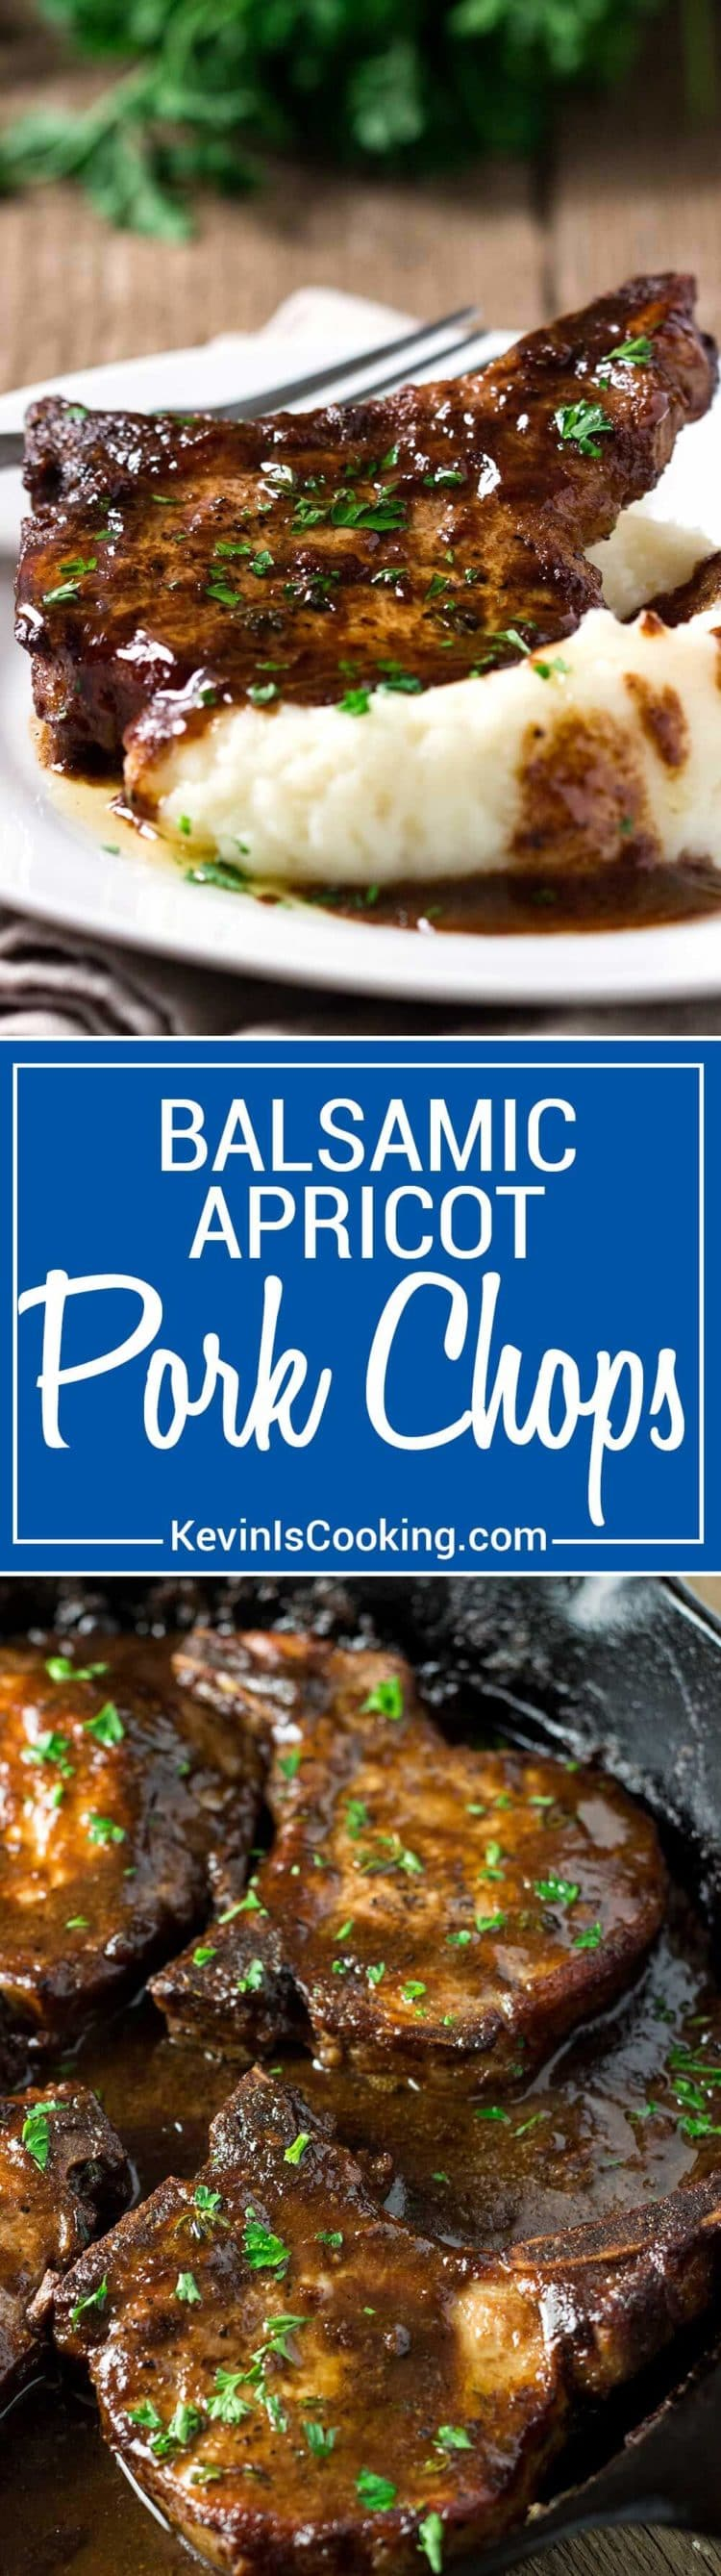 Super easy, super tasty, these Balsamic Apricot Pork Chops are on the table in minutes. A quick pan sauce with balsamic, Dijon and apricot jam... so good.